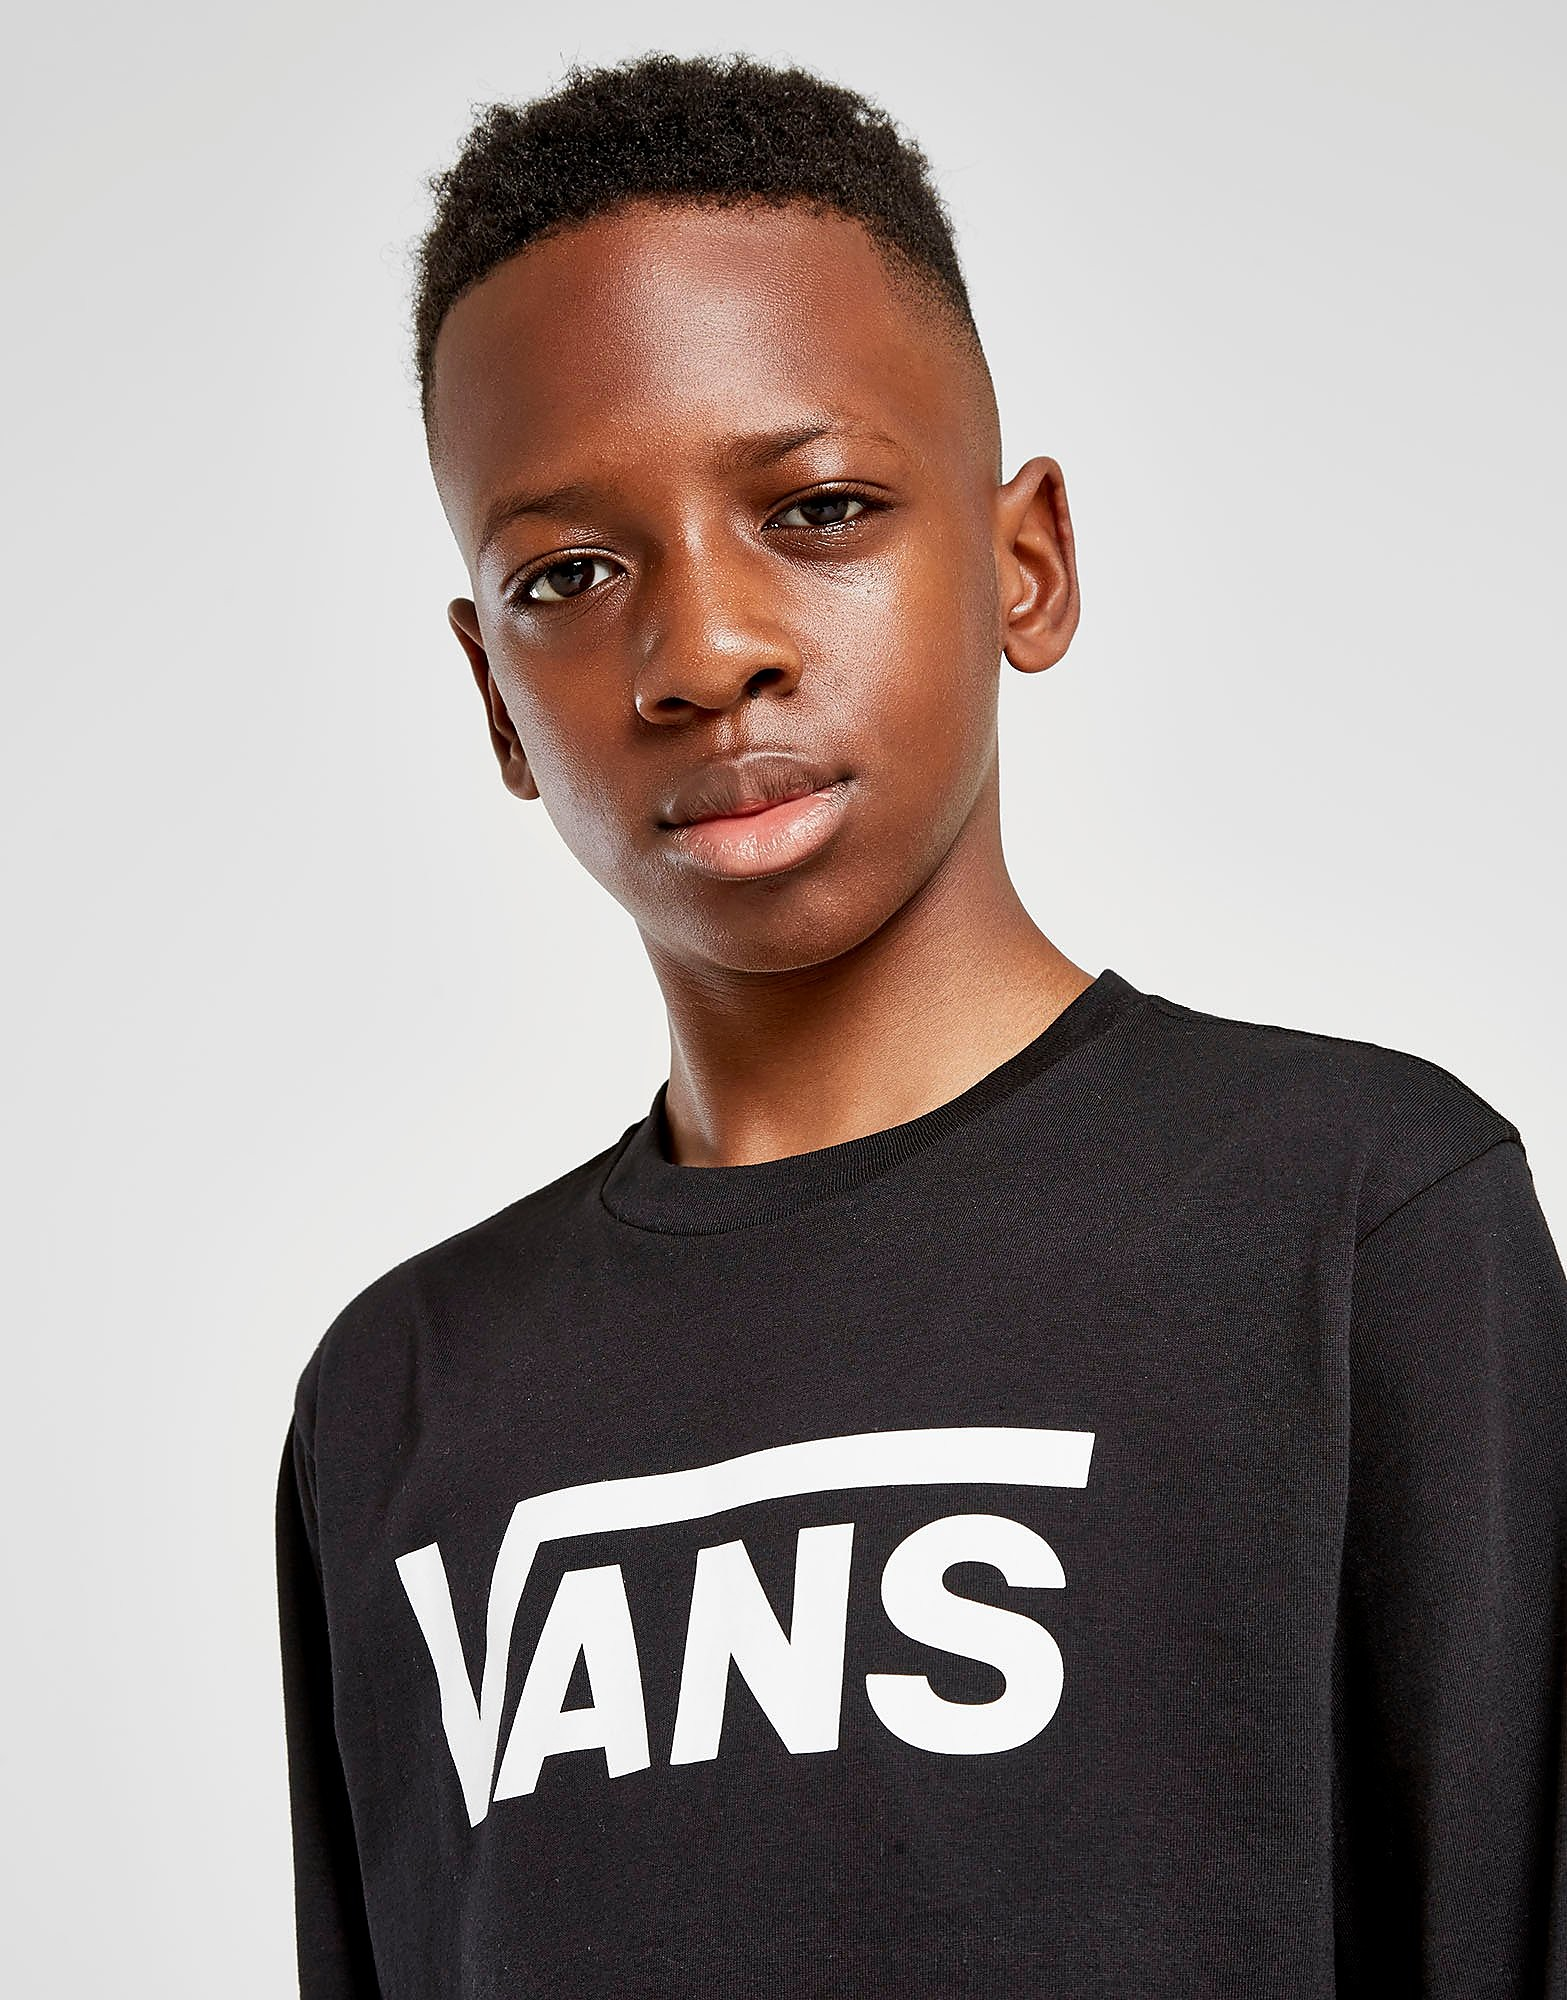 Vans camiseta Classic Long Sleeved júnior